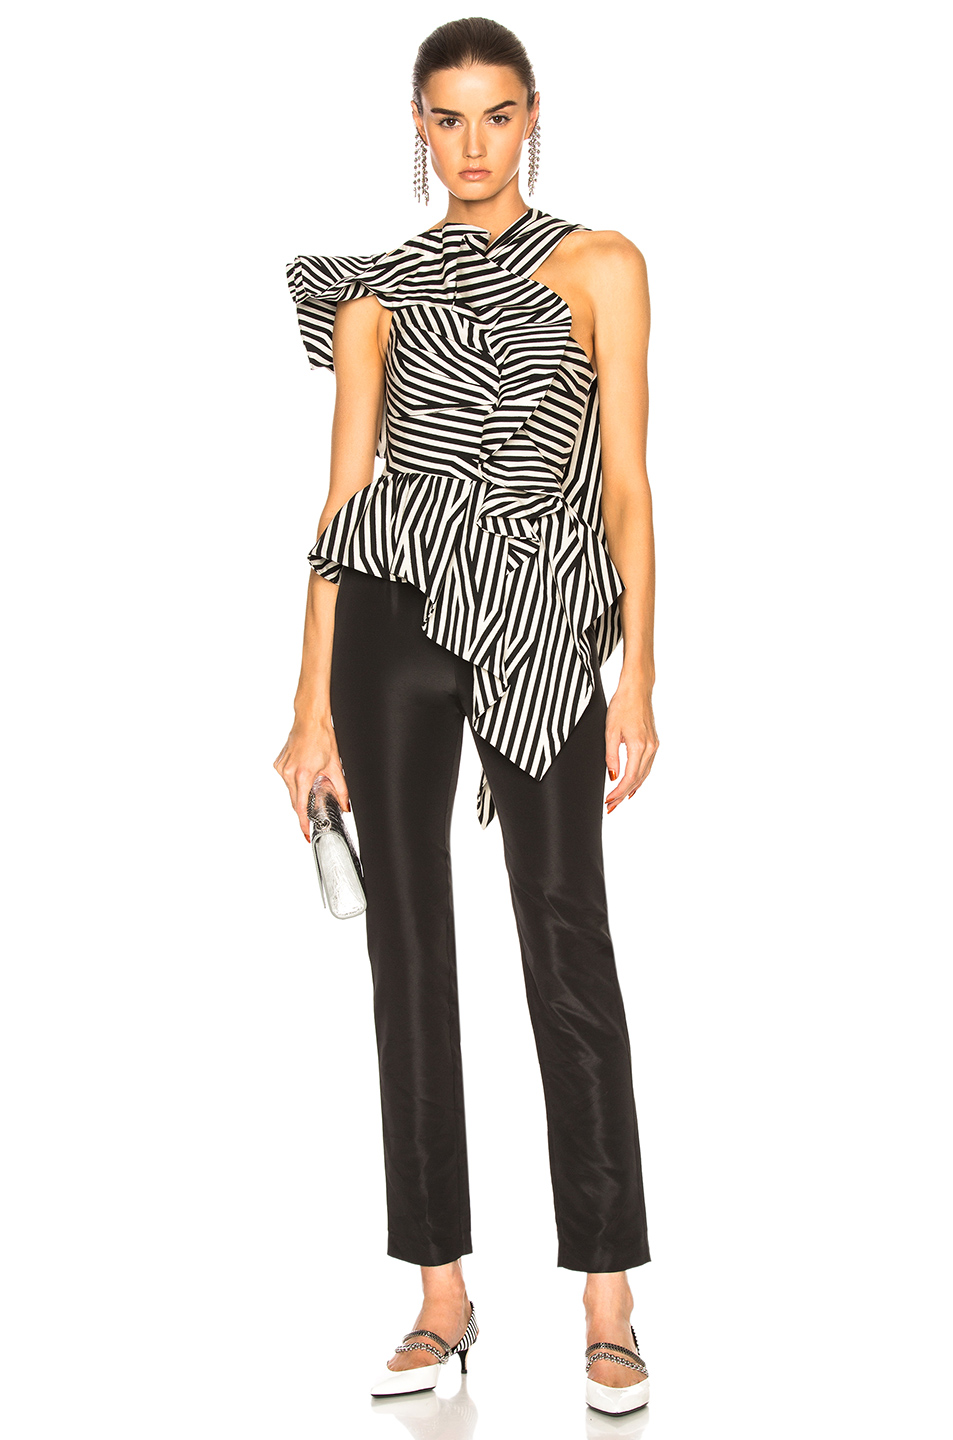 7b9f8634bbcc Buy Original self-portrait Asymmetric Stripe Ruffle Jumpsuit at ...